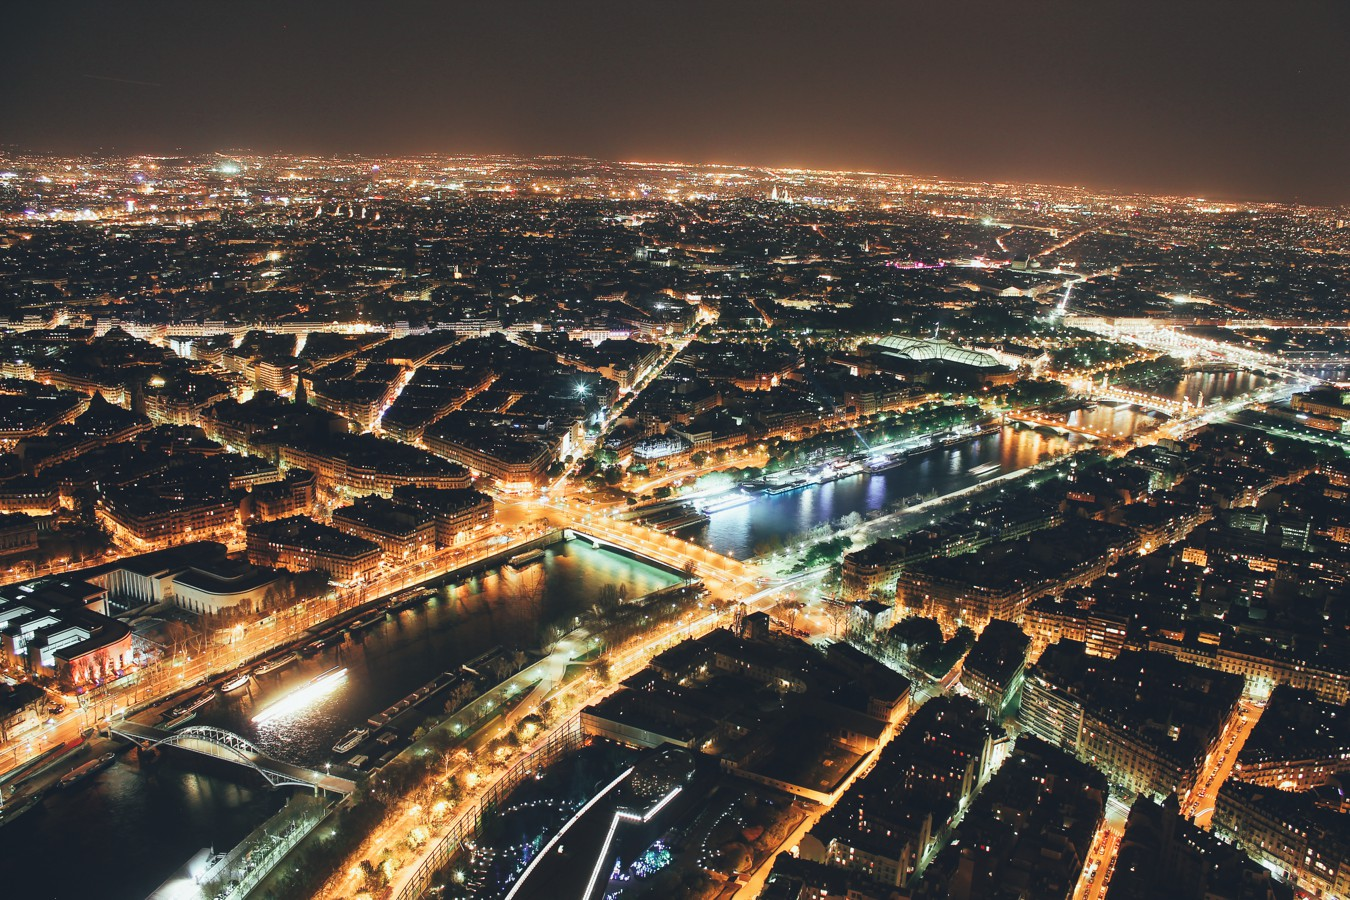 Things to do in Paris - Take in the view from the top of the Eiffel Tower (10)